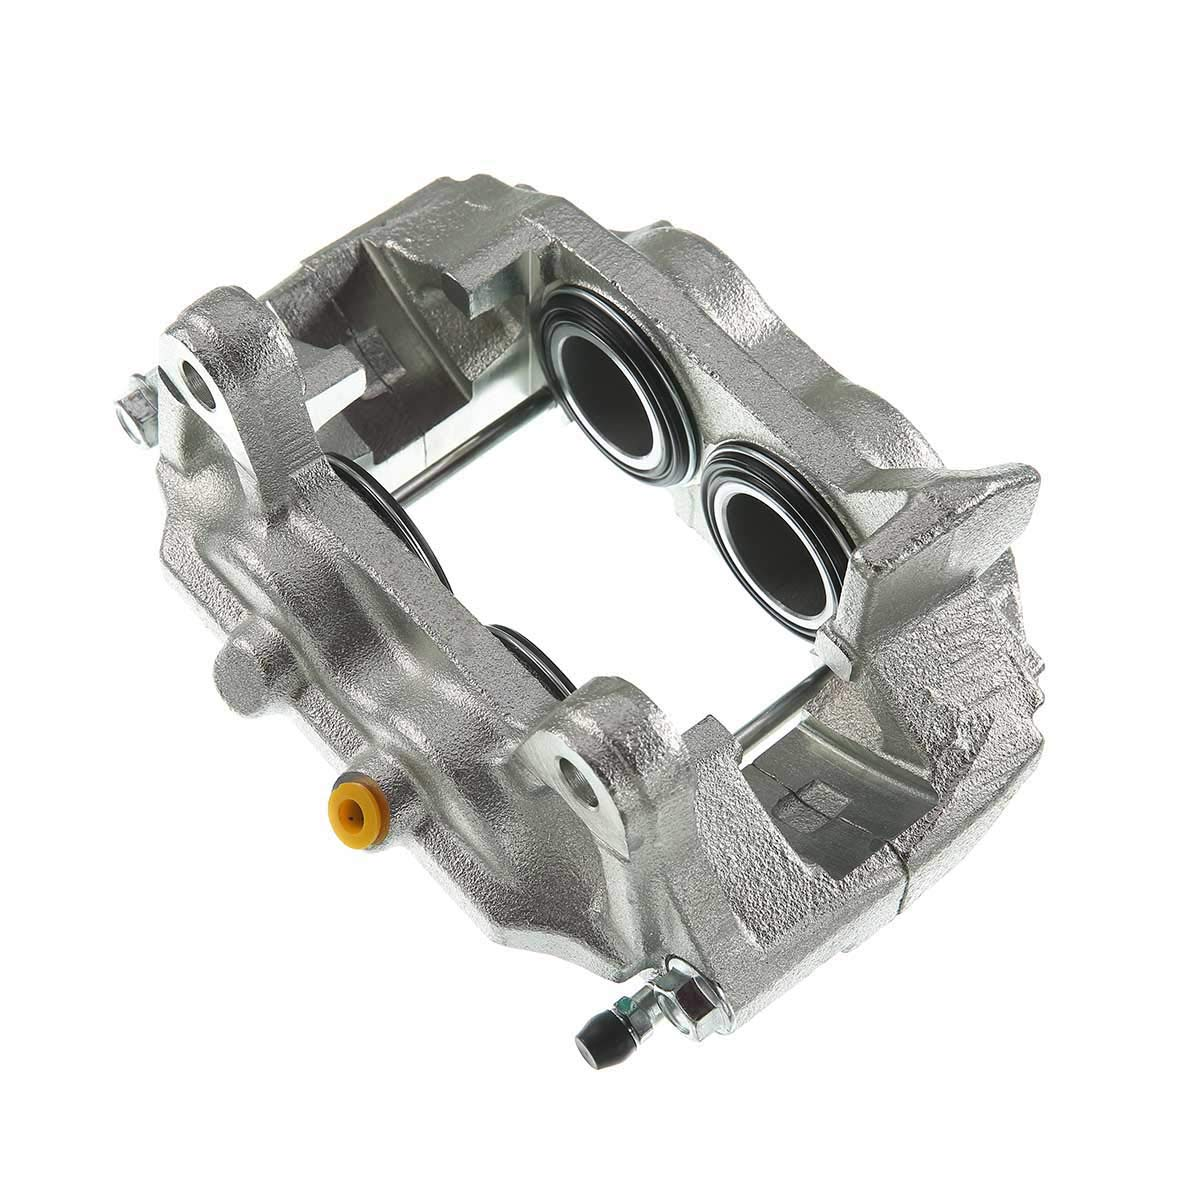 A-Premium Brake Caliper Without Bracket Compatible with Toyota Sequoia Tundra 2000-2003 Front Left and Right Not Fit the Models with Casting#13WL 2-PC